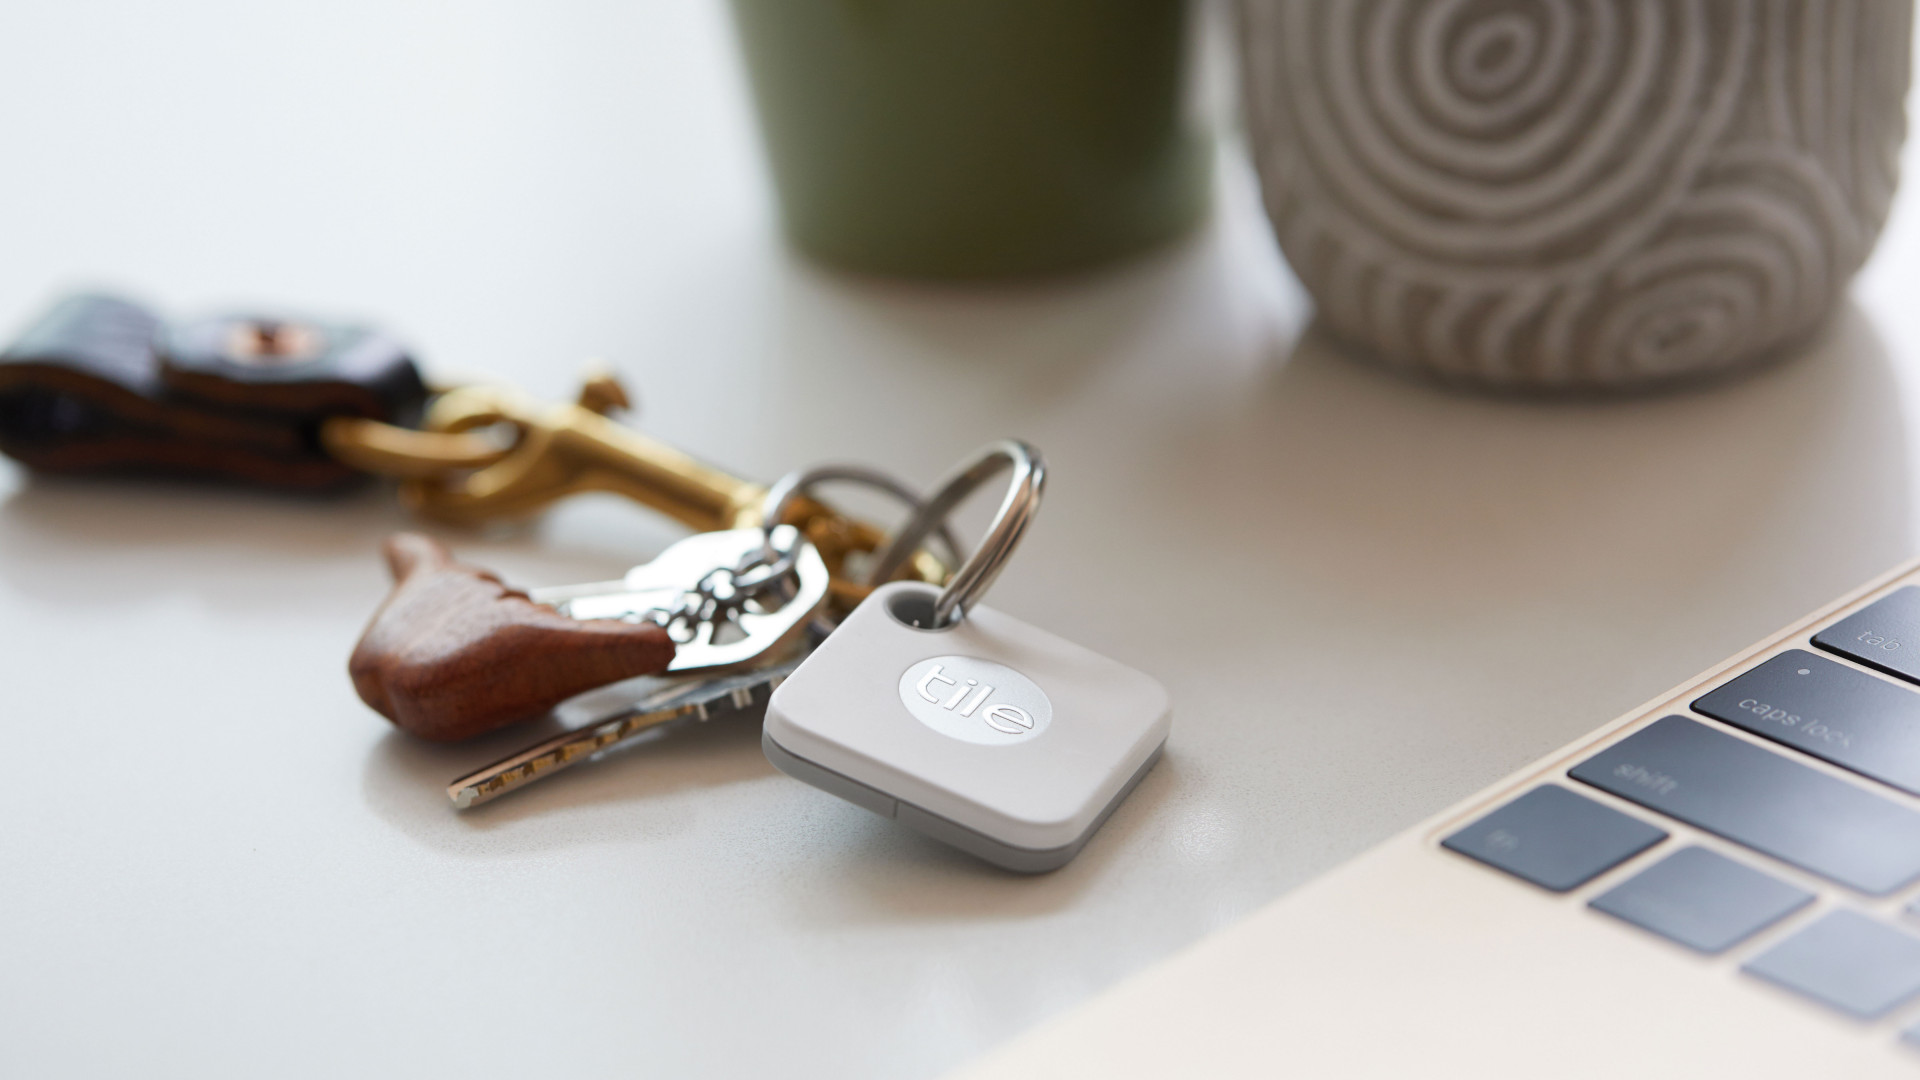 Tile Bluetooth tracker: on keys